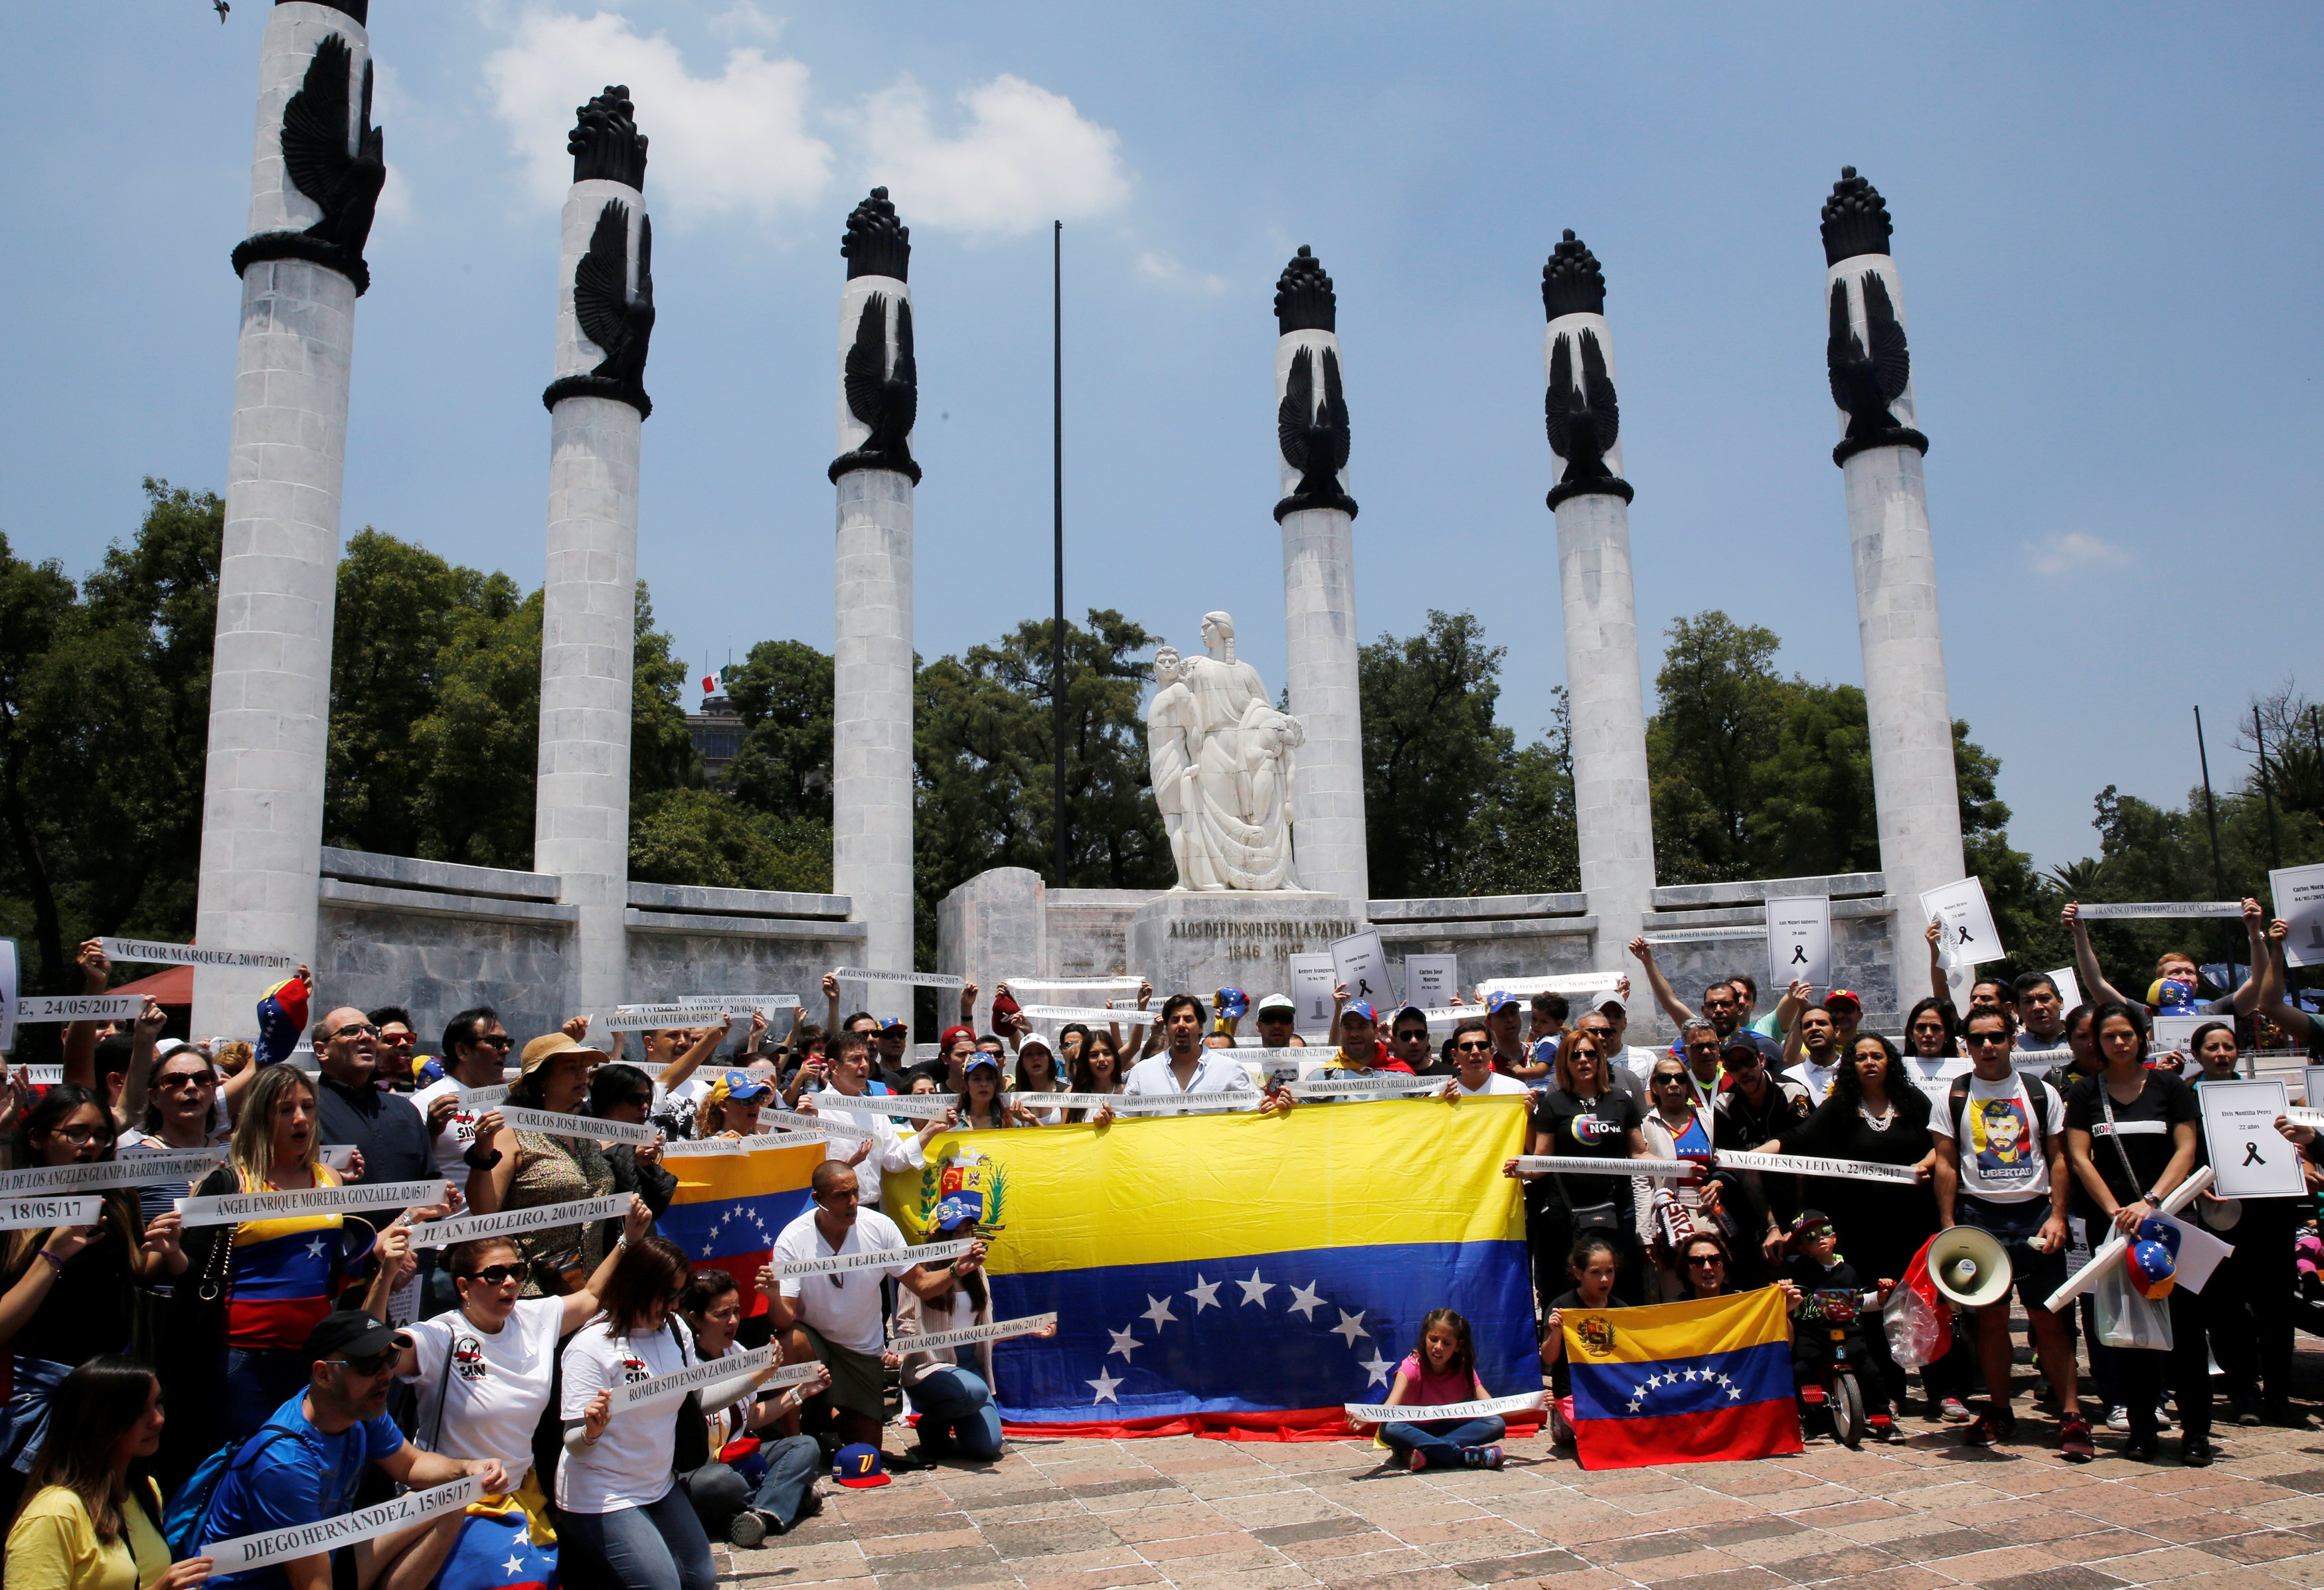 People hold Venezuela flags as they take part in a protest held by Venezuelans in Mexico against Venezuela's Constituent Assembly election, at the Heroic Children monument in Mexico City, Mexico  July 30, 2017. REUTERS/Henry Romero